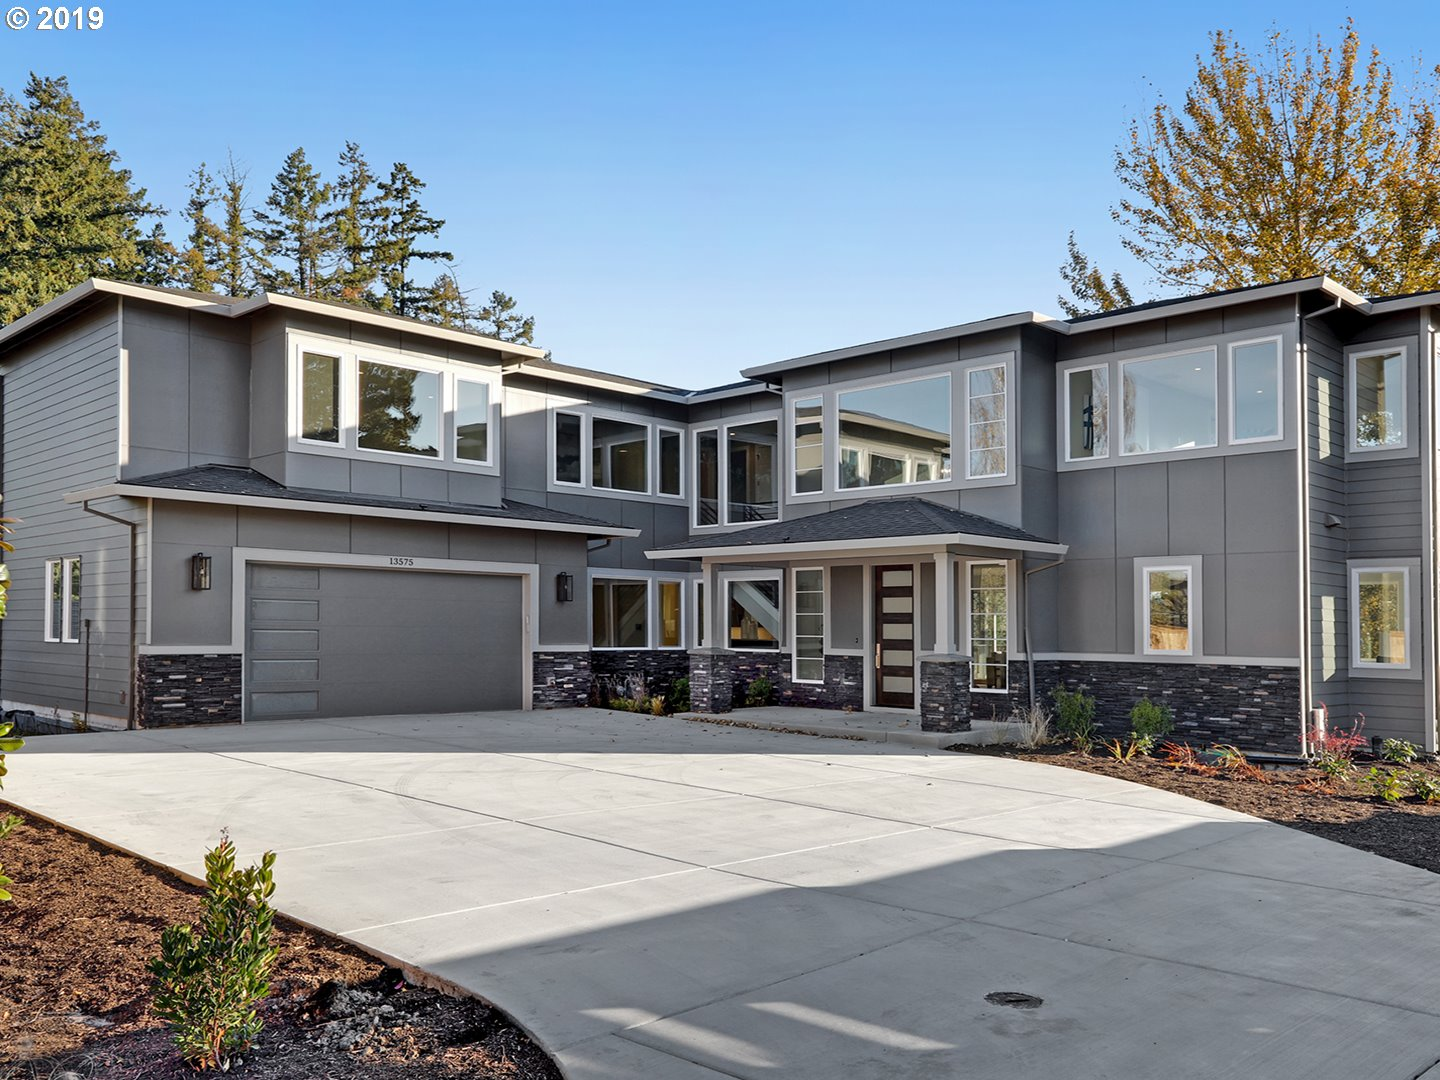 Stunning NW contemporary w/great room floor plan, gourmet kitchen & 4 bd/2.5 bth + Den or 5th Bed on main +upper Bonus Room. Custom upgrades throughout:Crestron Smart Home system w/wired sound to almost all rooms, SubZero fridge, Wolf 6 burner range, Asko dishwasher, beverage fridge in quartz slab island & built-ins in all closets. Spectacular master suite w/ freestanding tub & walk-in closet. Conveniently located in central Beaverton.